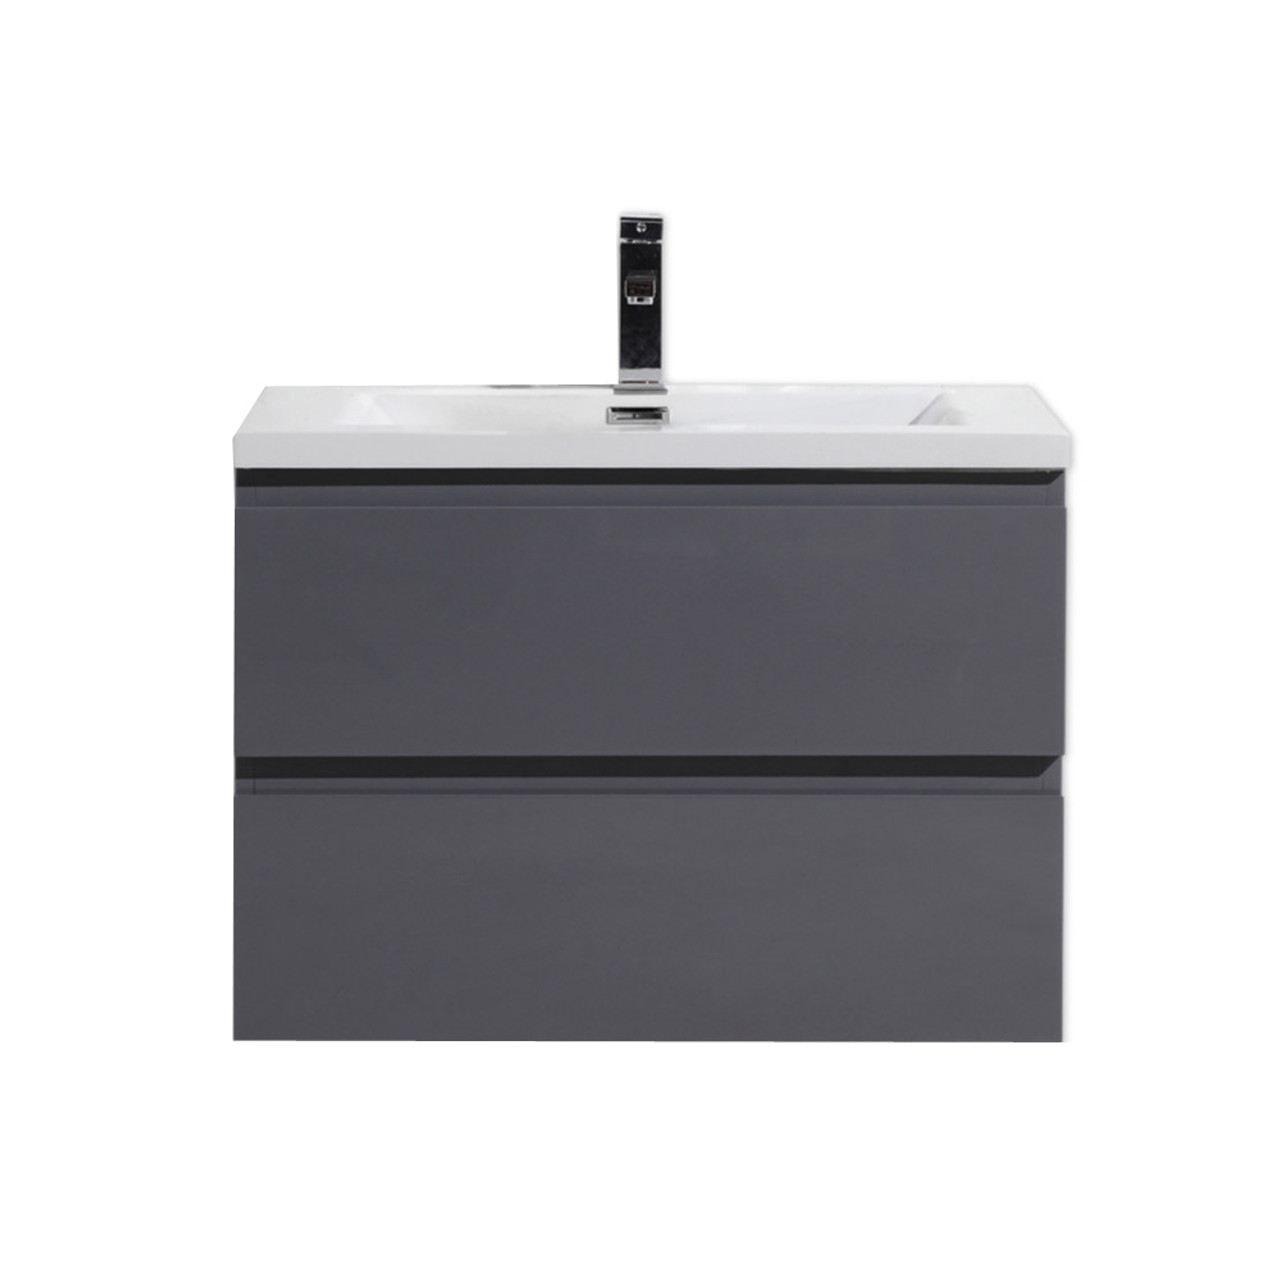 . MORENO MOB 30  HIGH GLOSS GREY WALL MOUNTED MODERN BATHROOM VANITY WITH  REEINFORCED ACRYLIC SINK